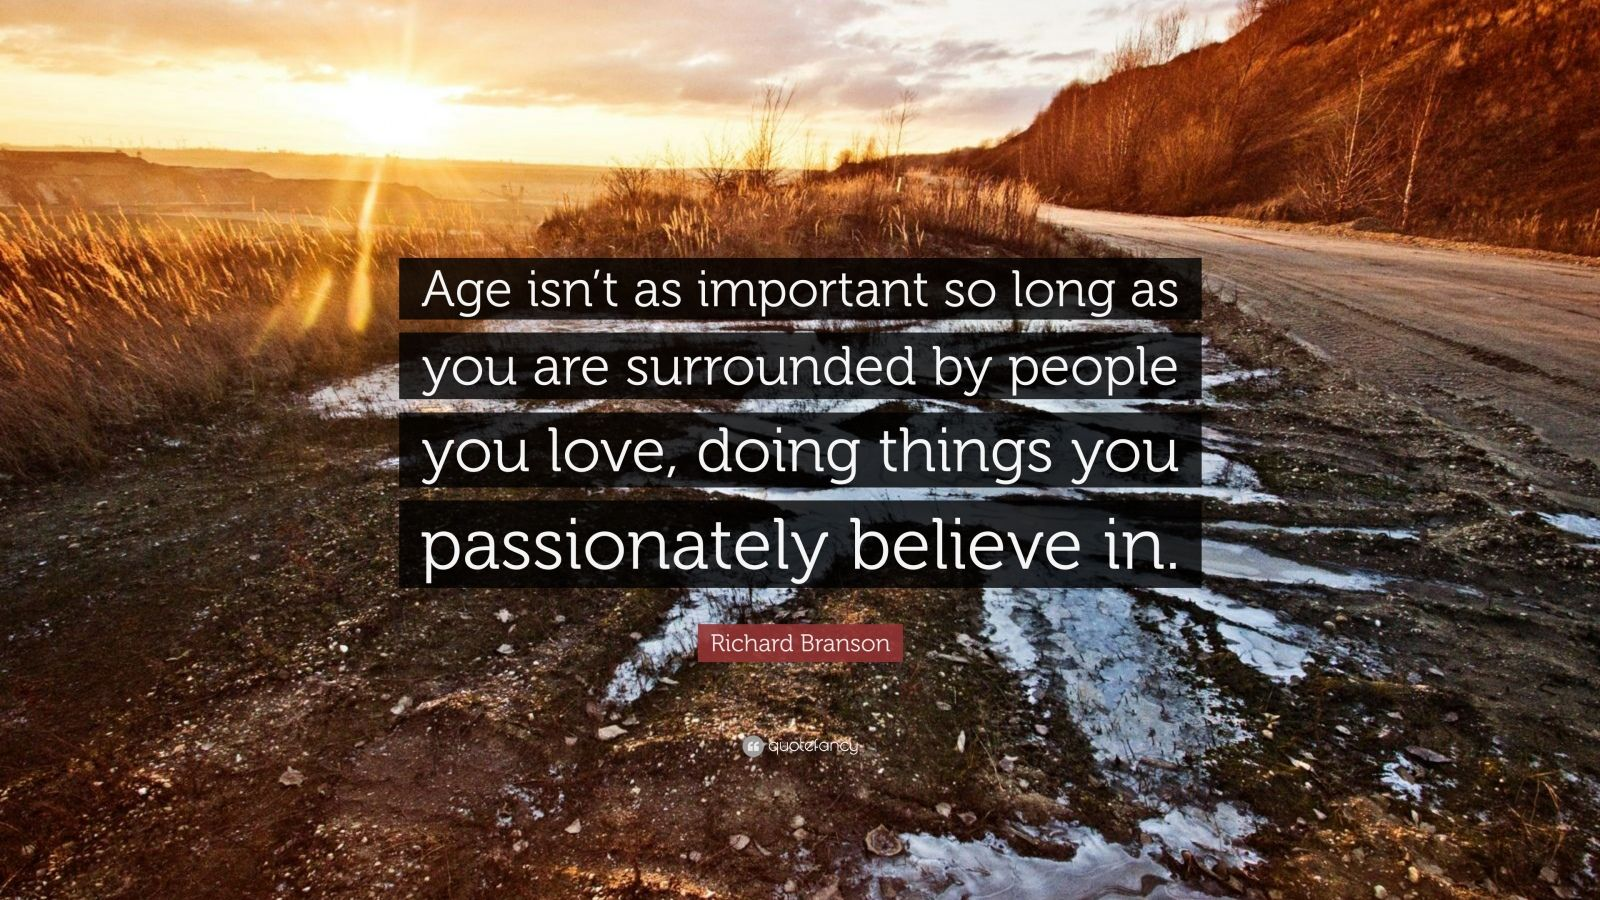 "Richard Branson Quote: ""Age isn't as important so long as you are surrounded by people you love, doing things you passionately believe in."""